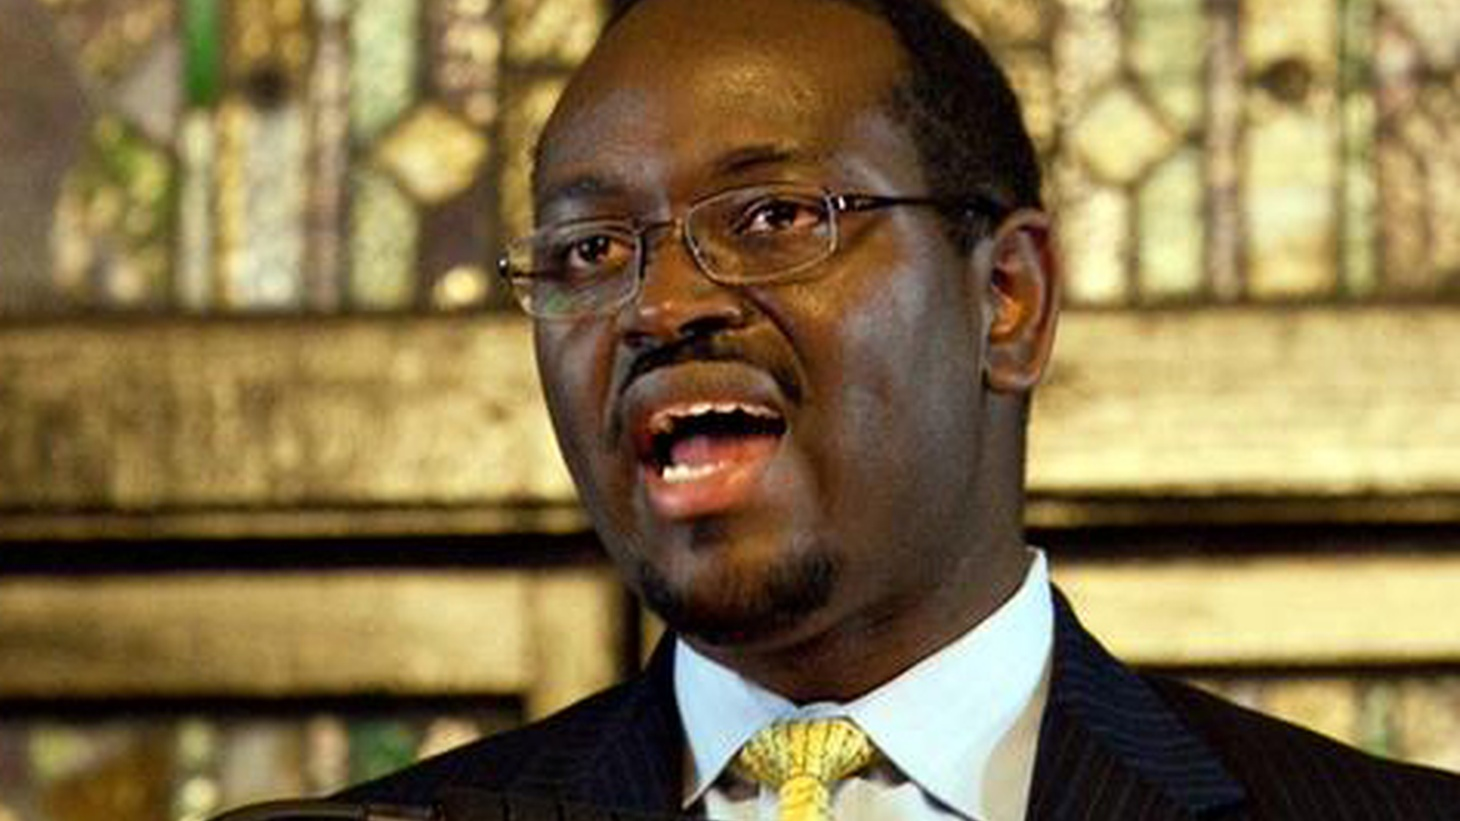 We start today with a remembrance of Reverend Clementa Pinckney, one of the nine victims of last night's shooting rampage in Charleston, South Carolina. Then, does alleged killer Dylan Roof's apparent racism reflect a larger strain of violent extremism in our society, or only his own deranged thoughts?